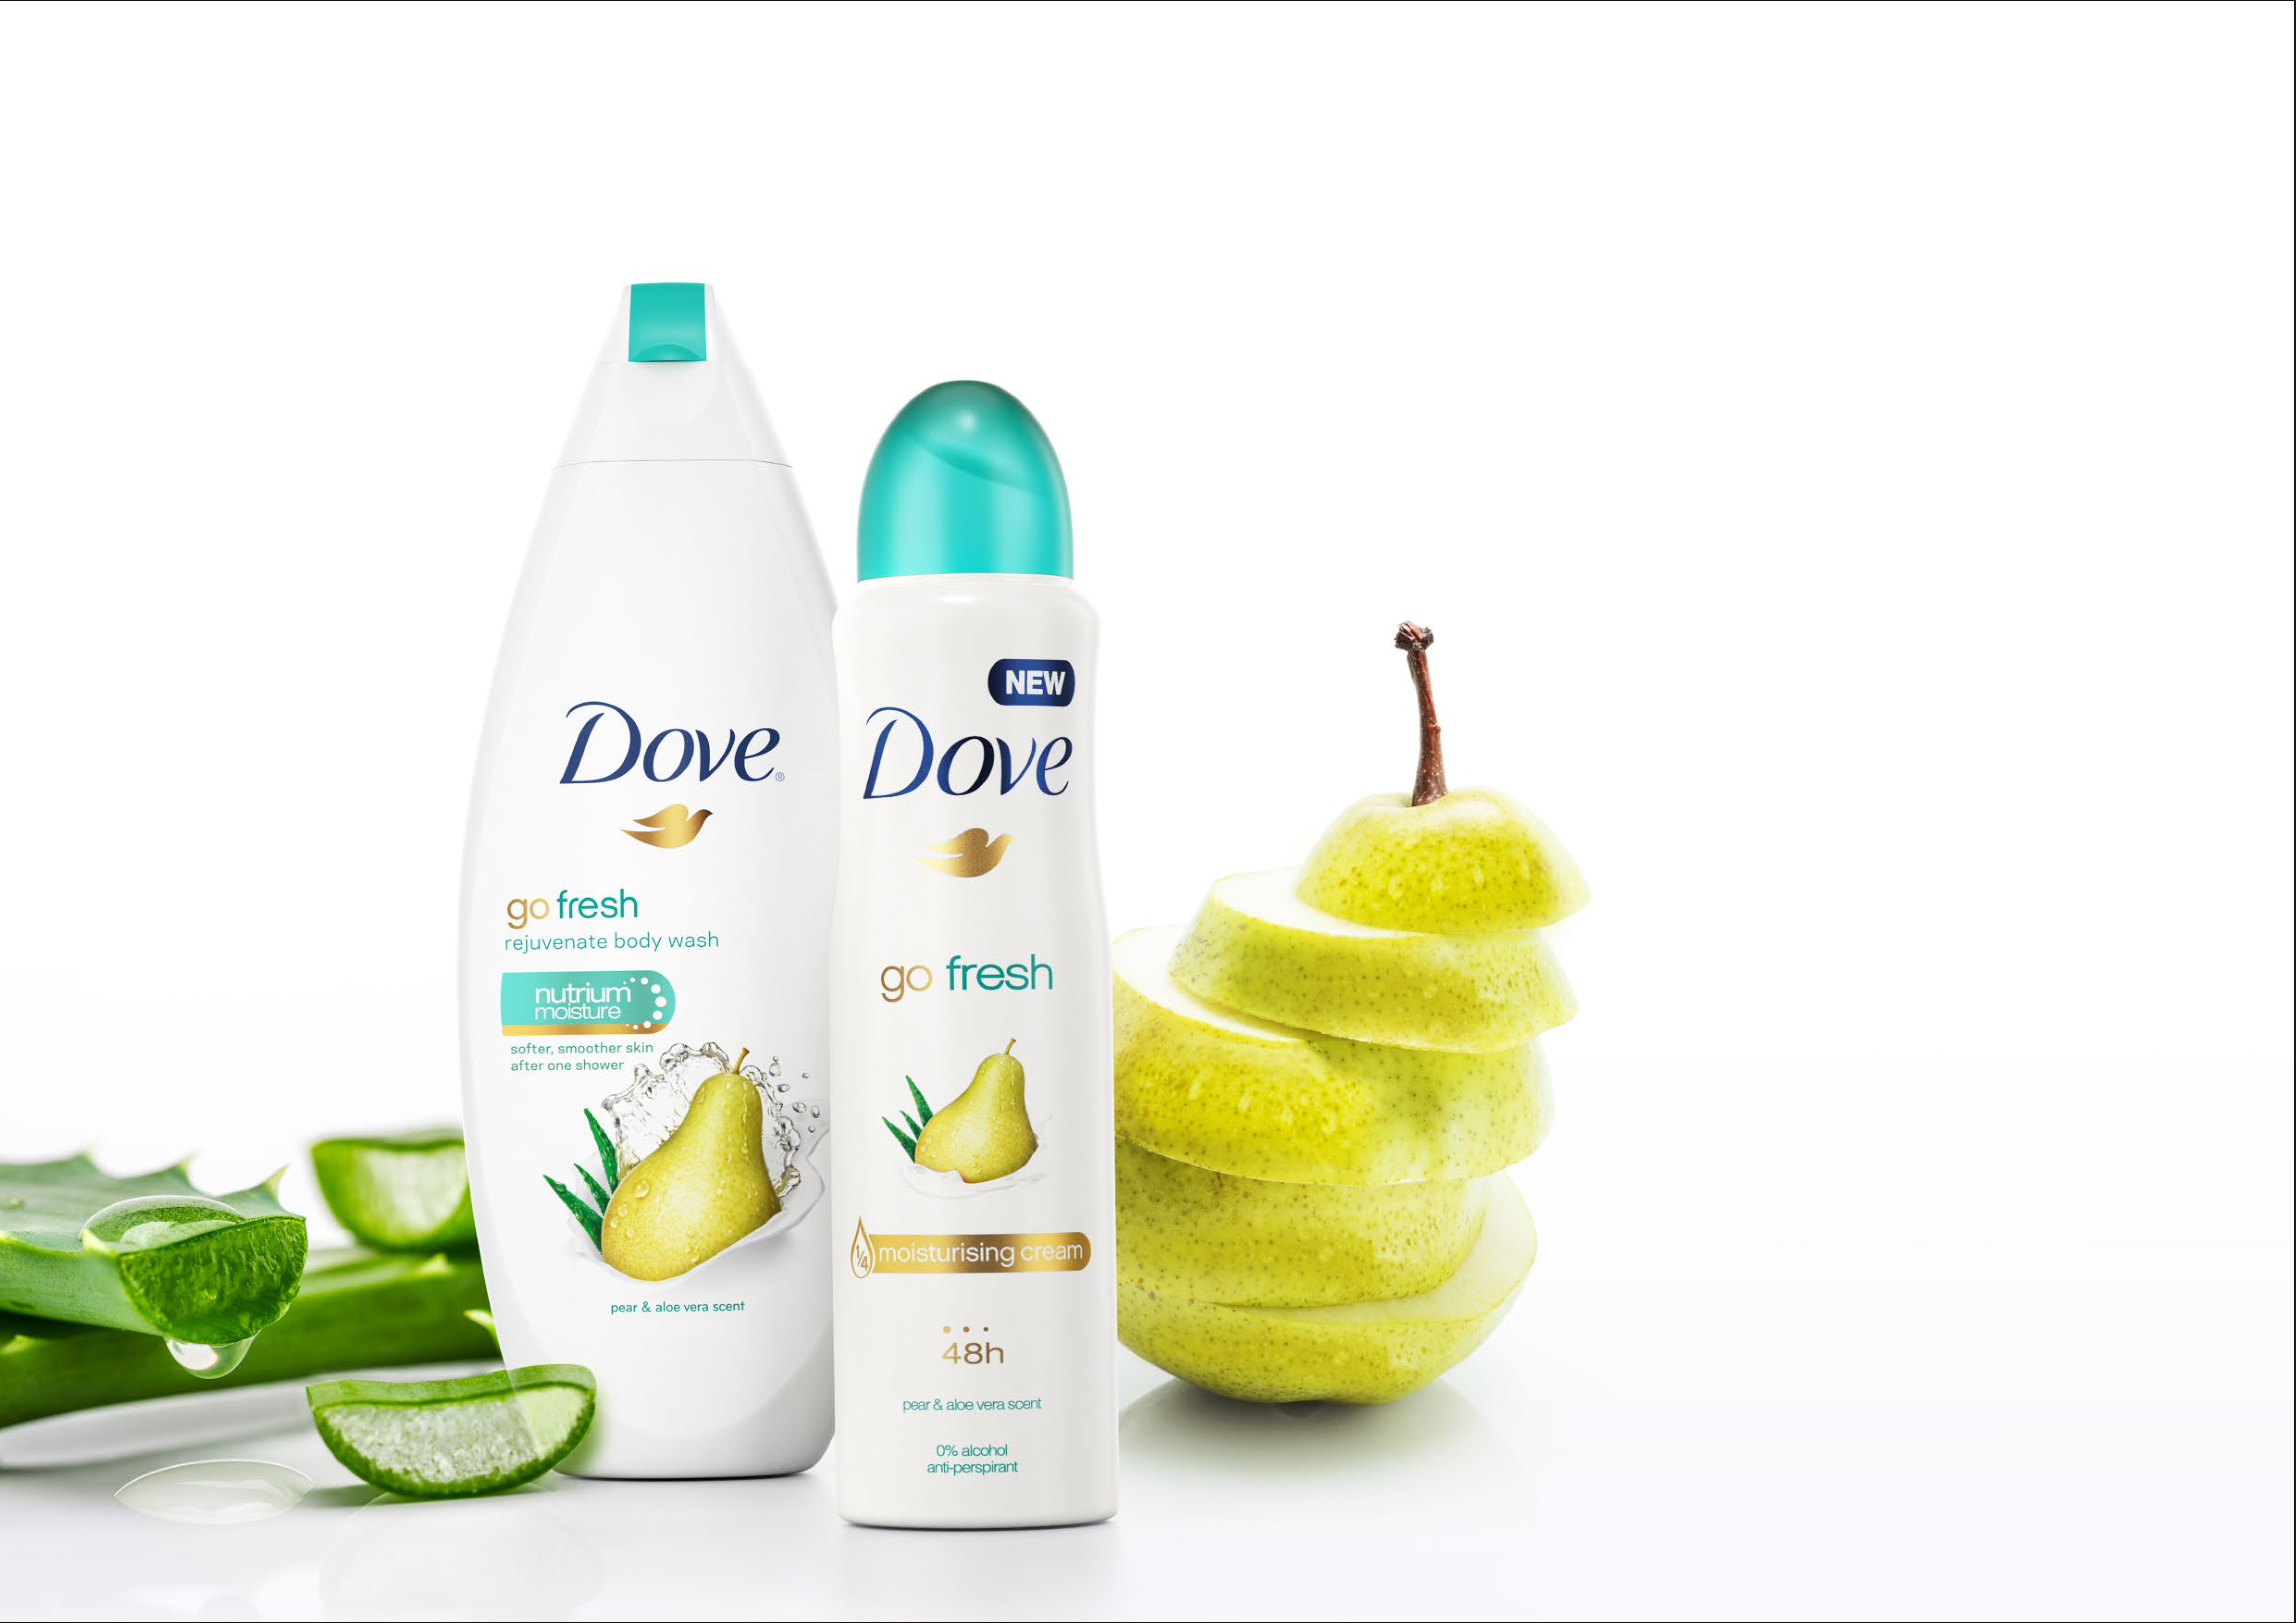 communication strategy for dove by unilever Unilever's integrated marketing communication introduction the company spelled out its goals publicly in its sustainable living plan but acknowledged it had no clear roadmap for how it would achieve them.